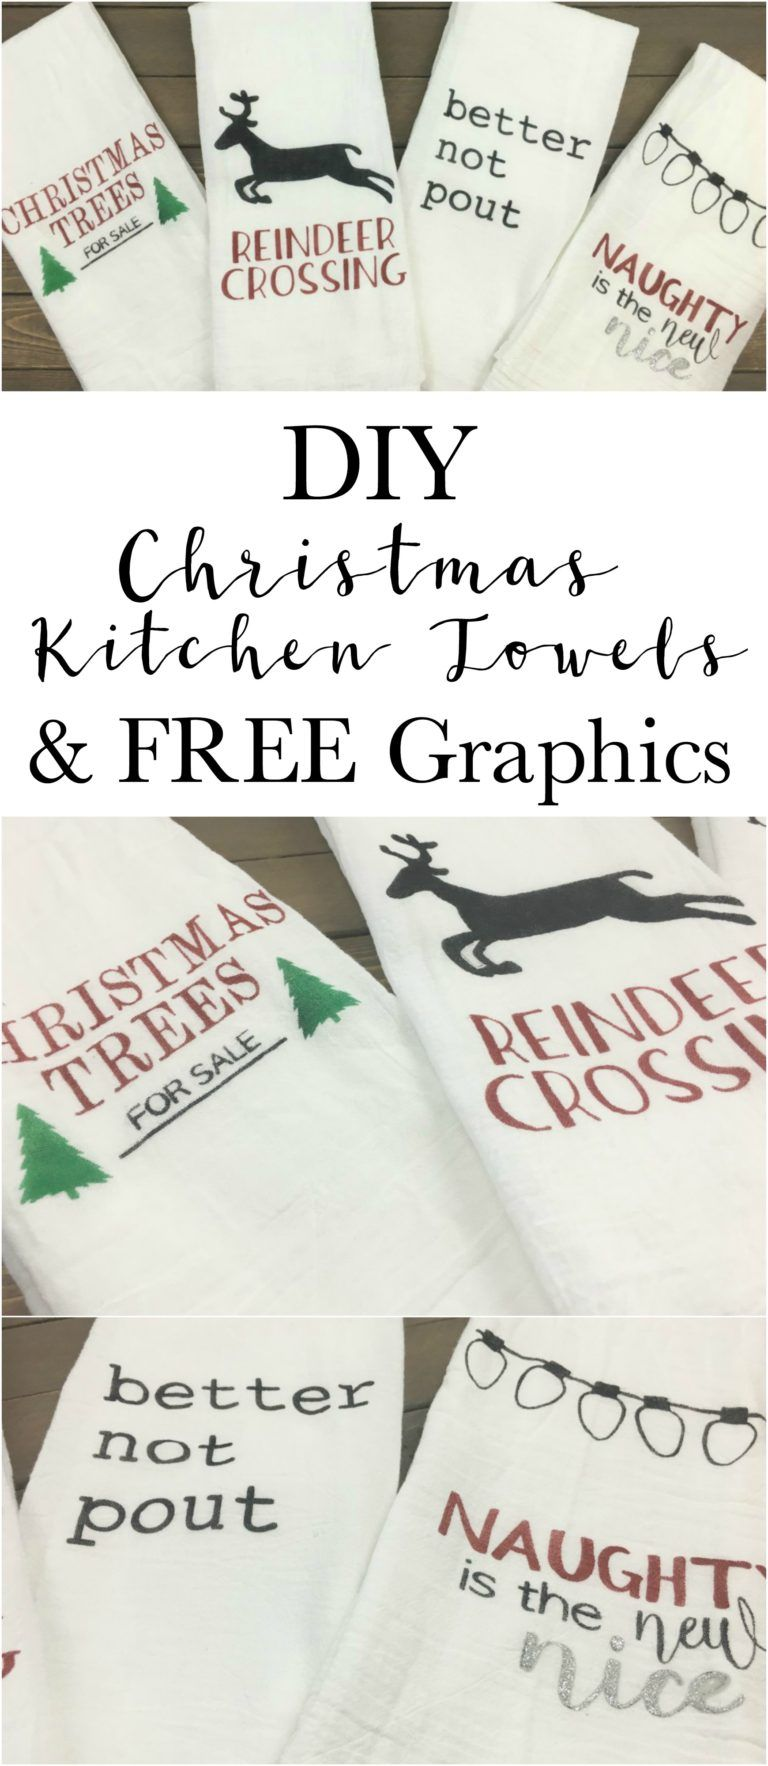 DIY Stenciled Christmas Kitchen Towels with FREE Images | Pinterest ...